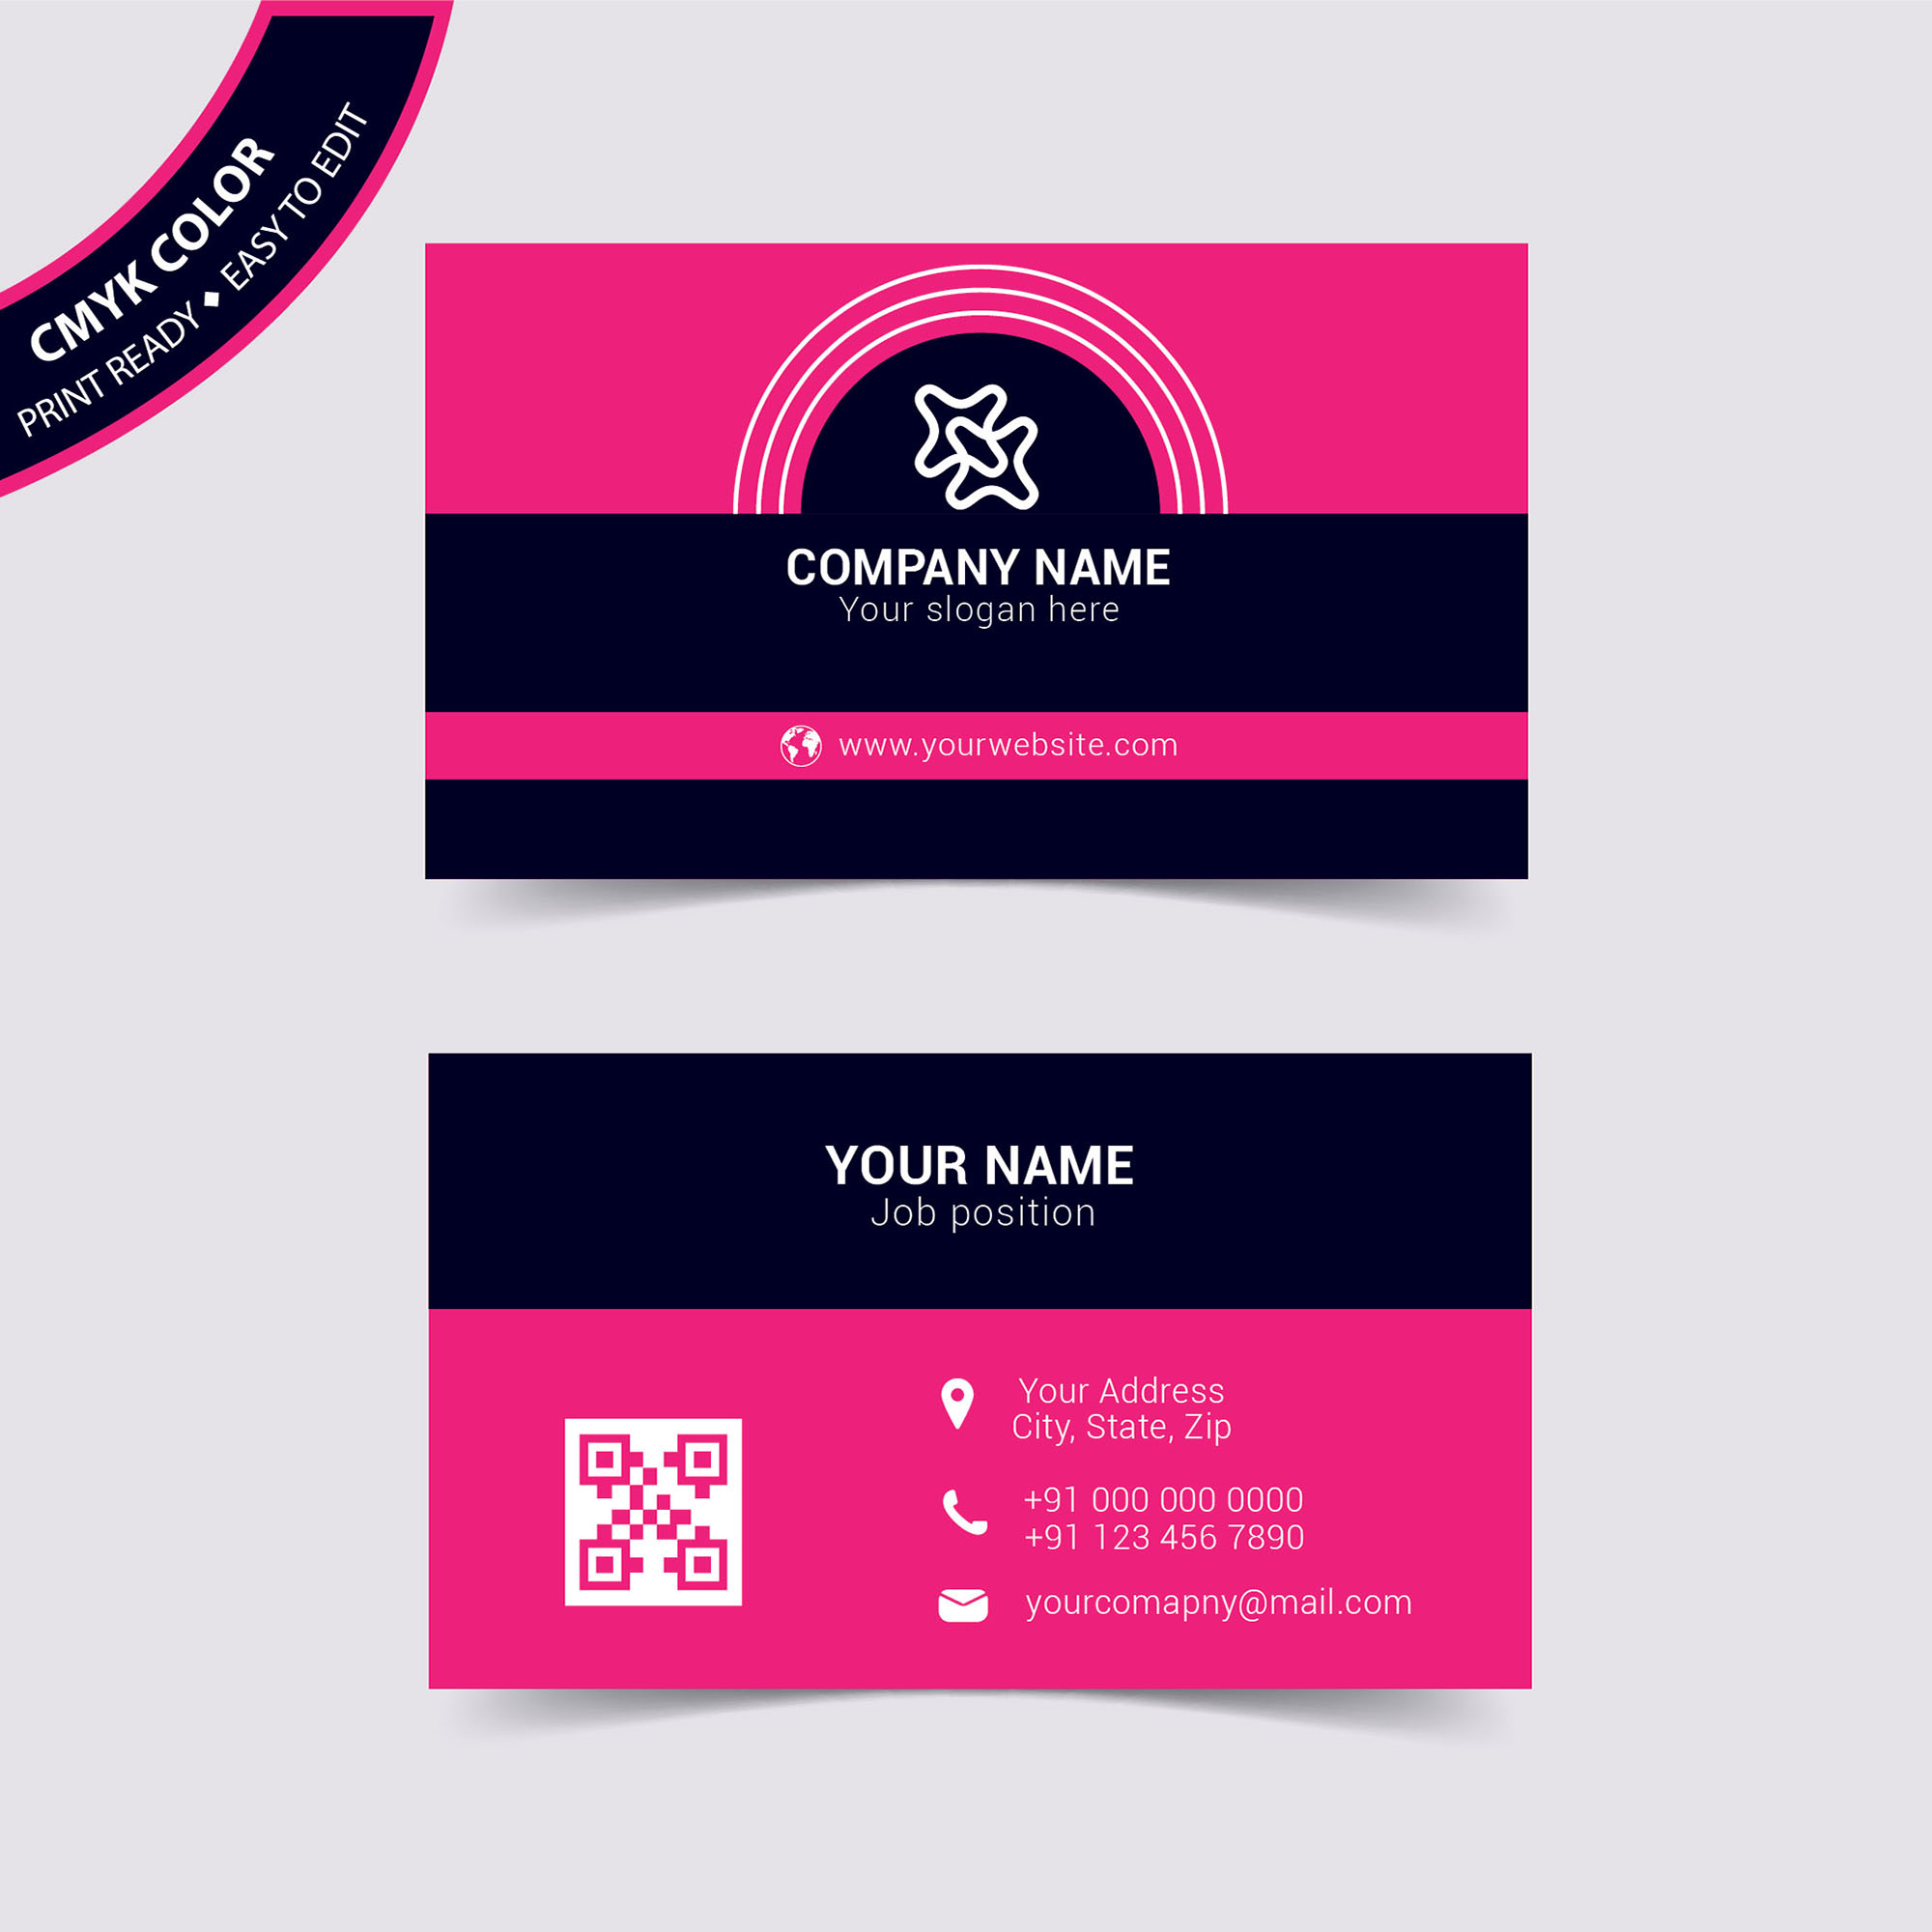 business card business cards business card design business card template design templates